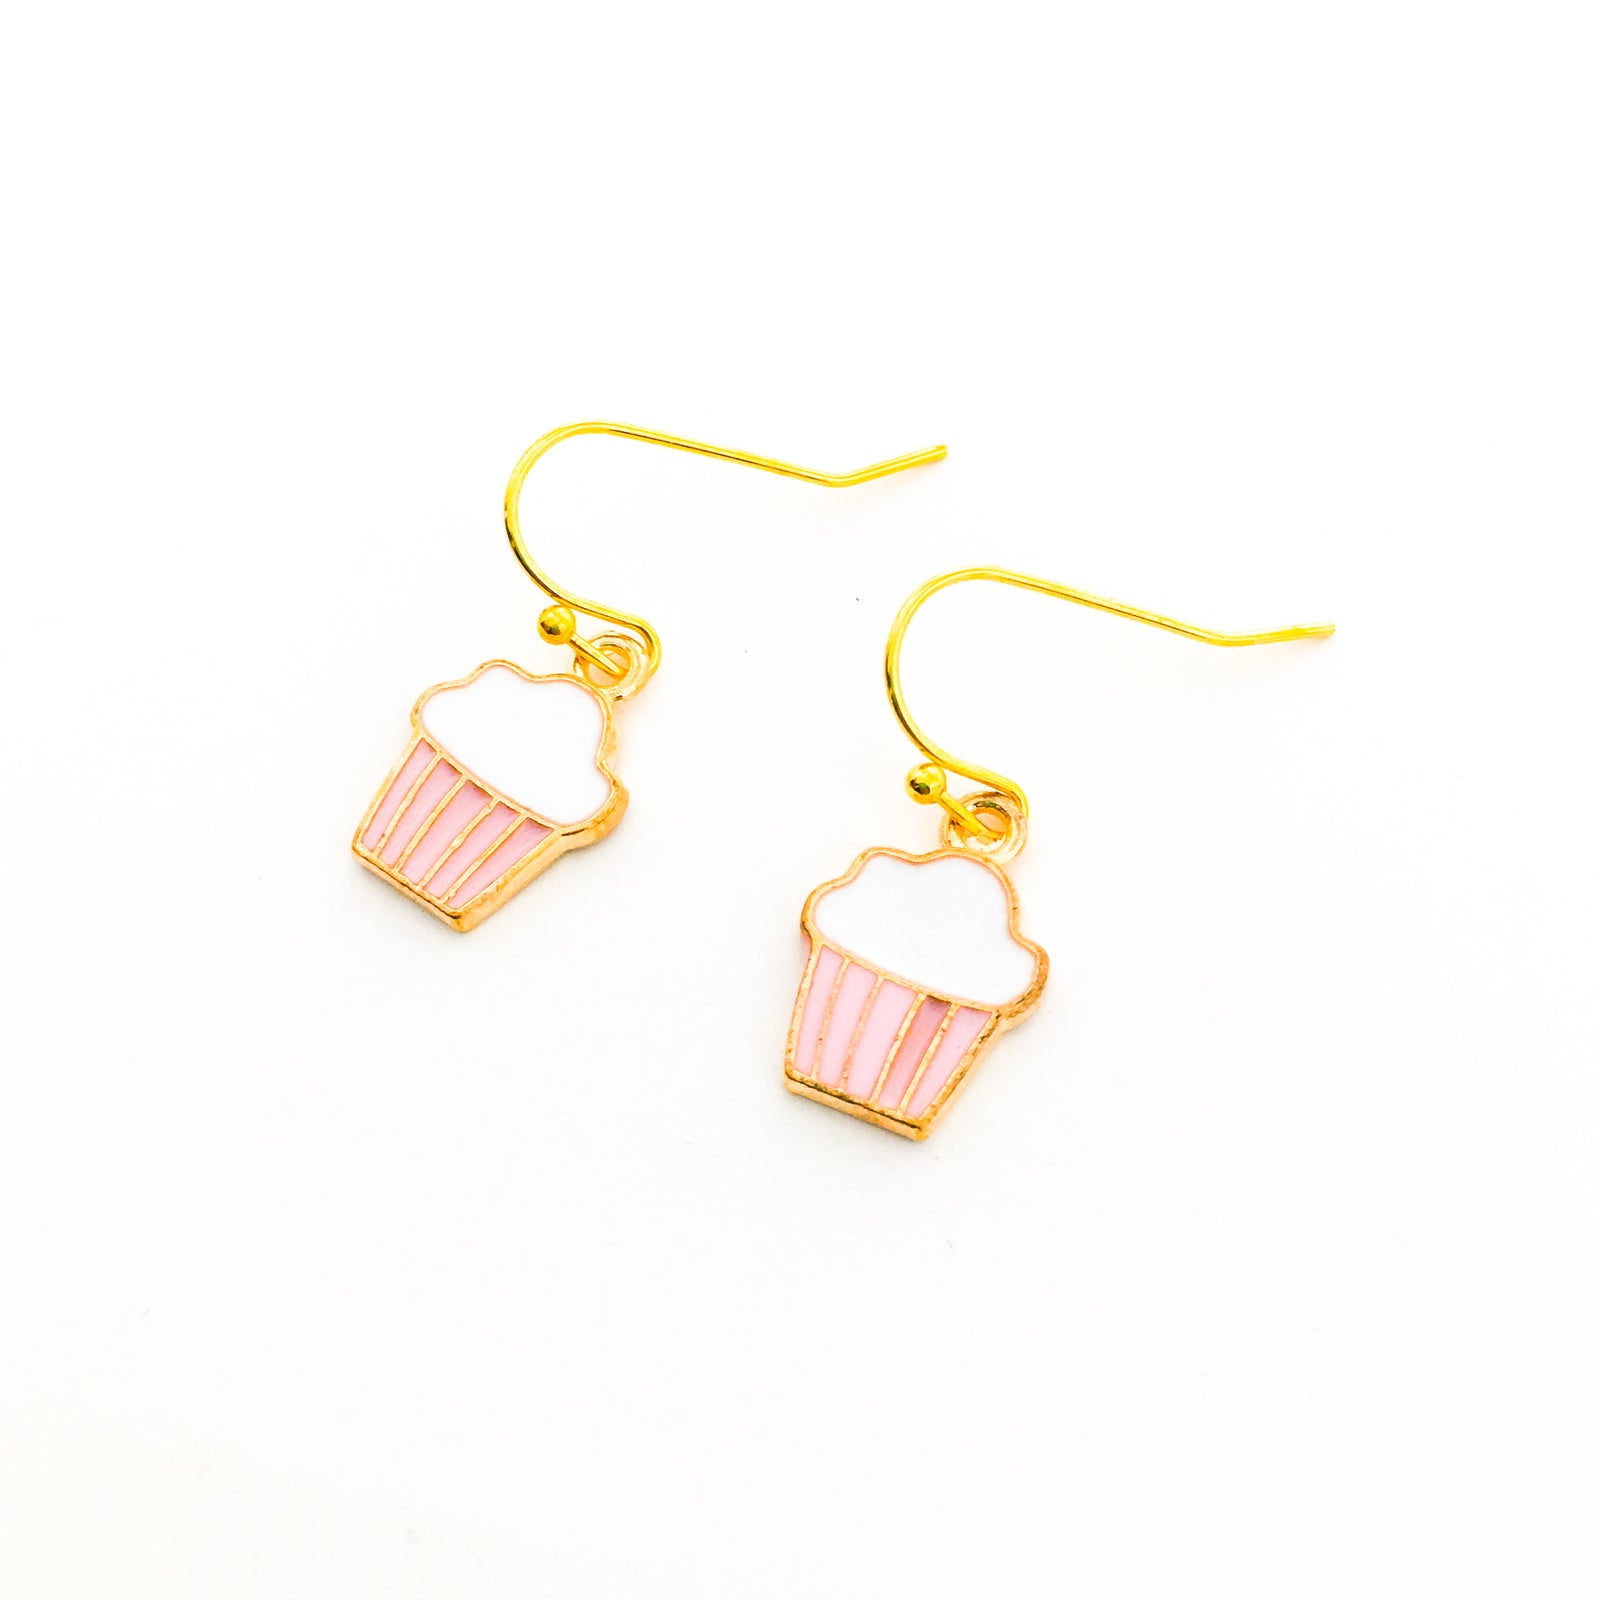 PINK CUPCAKE EARRINGS | GOLD